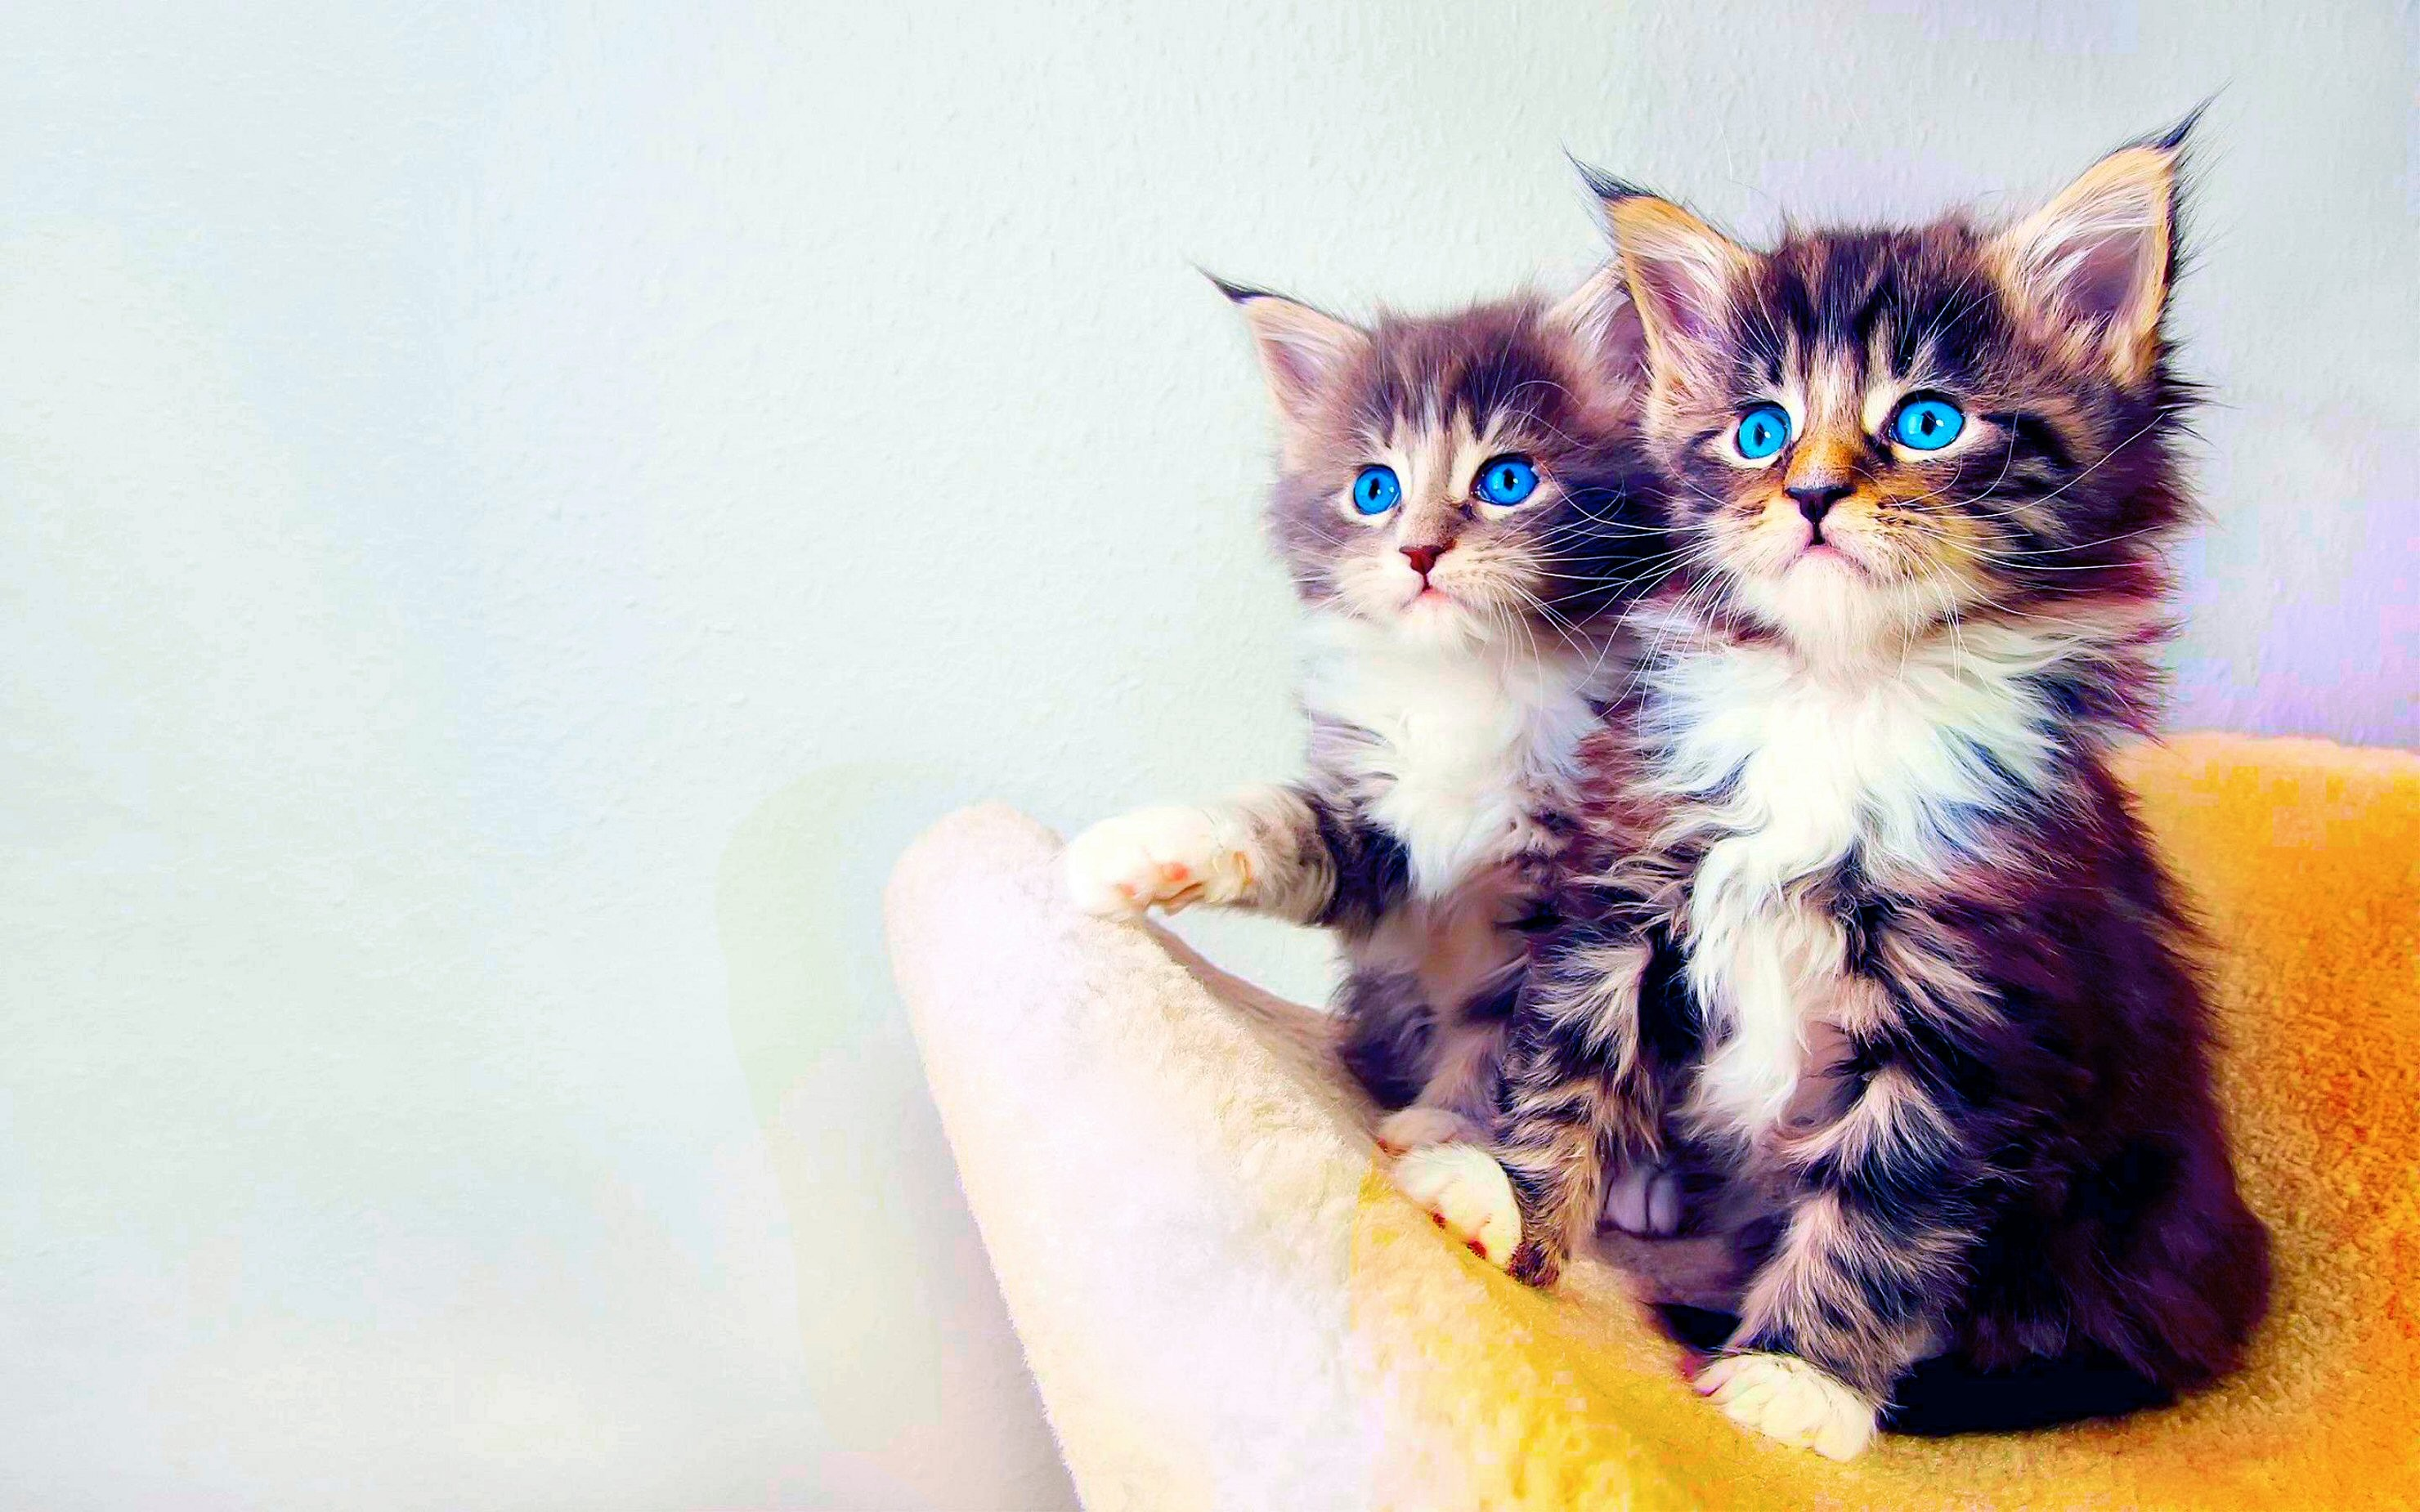 2960x1850 Kitten Wallpaper For Iphone 5s Download Gorgerous